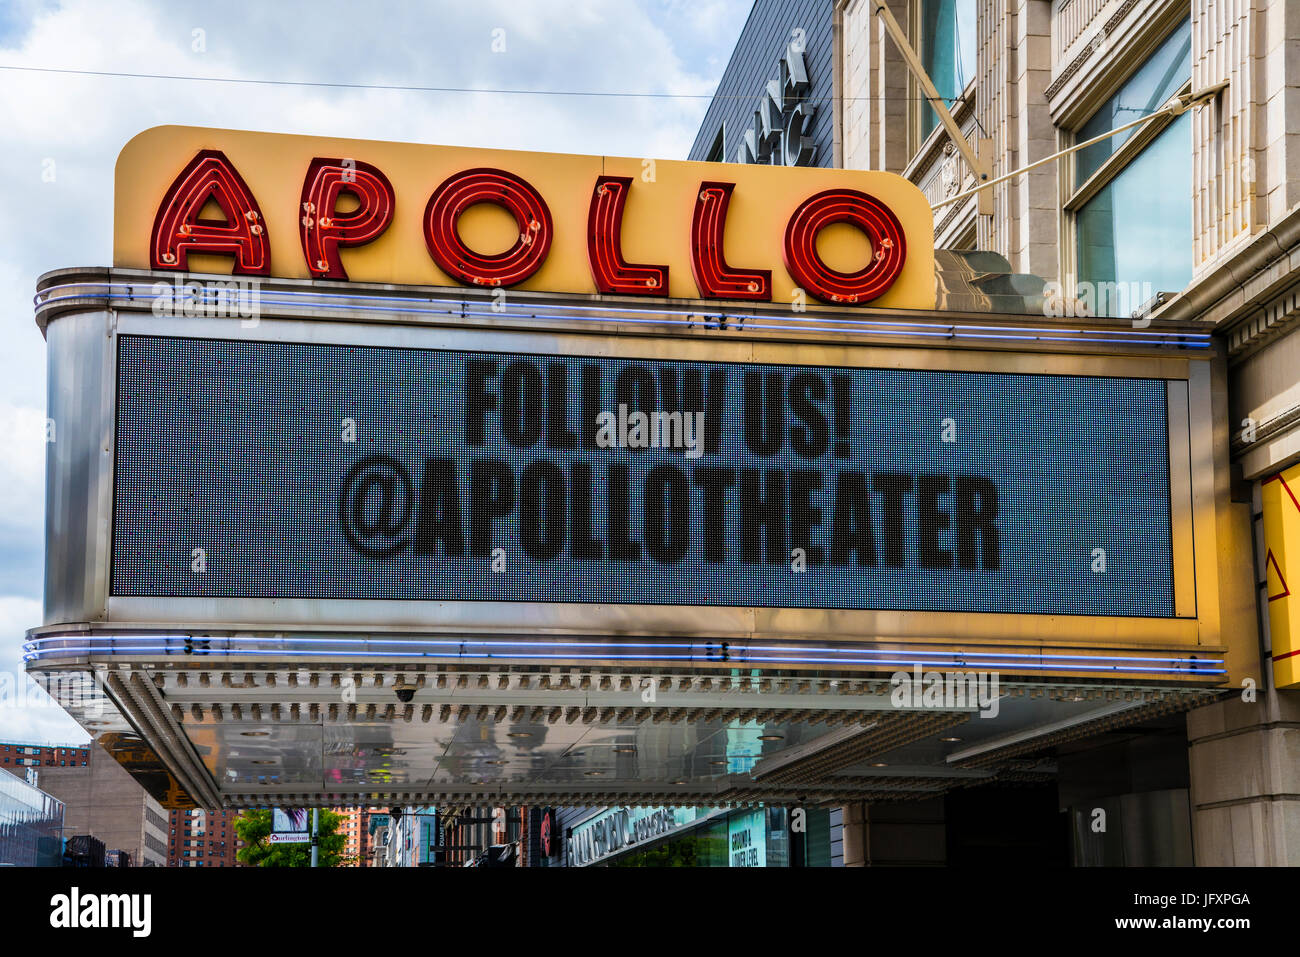 Apollo theater marquee in Harlem, a Manhattan New York neighborhood. Named for Apollo the Greco Roman God of music,, - Stock Image